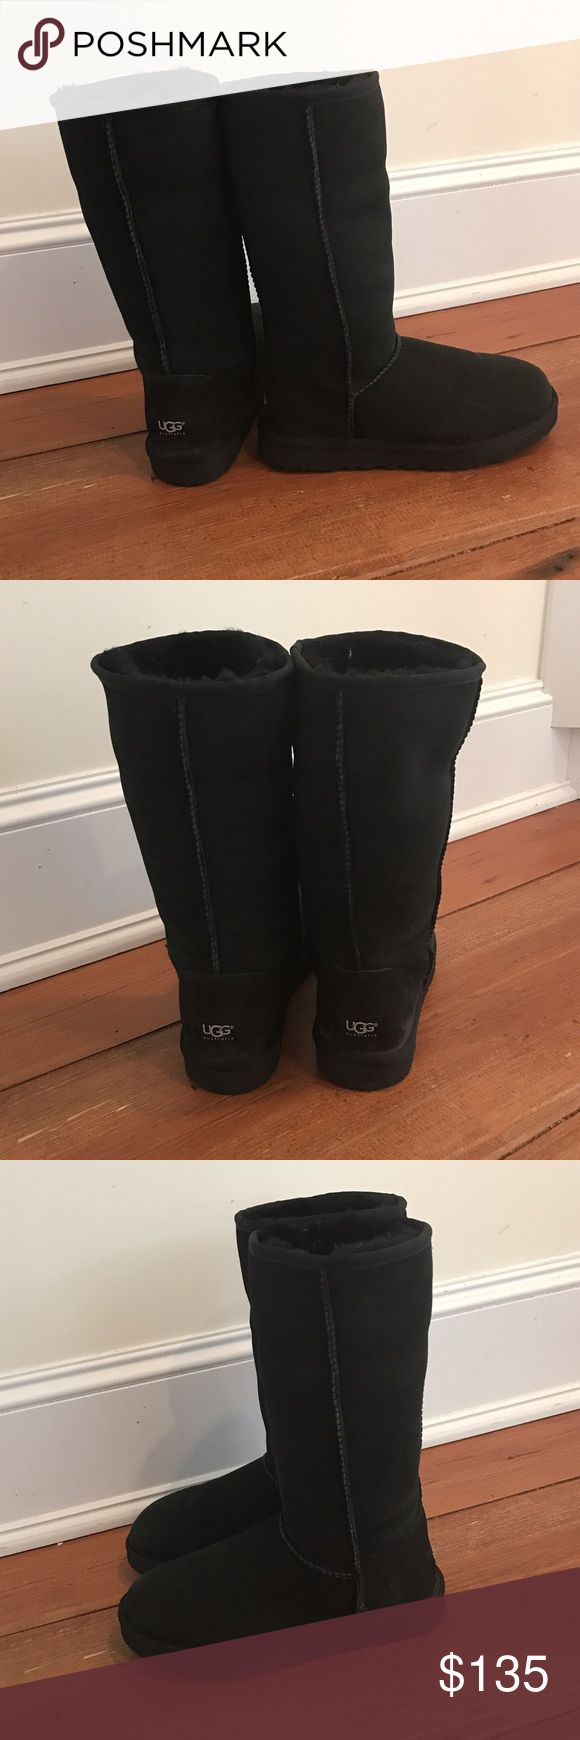 Ugg tall black boots size 7 Ugg tall black boots size 7. Excellent condition only worn a few times in nice weather. UGG Shoes